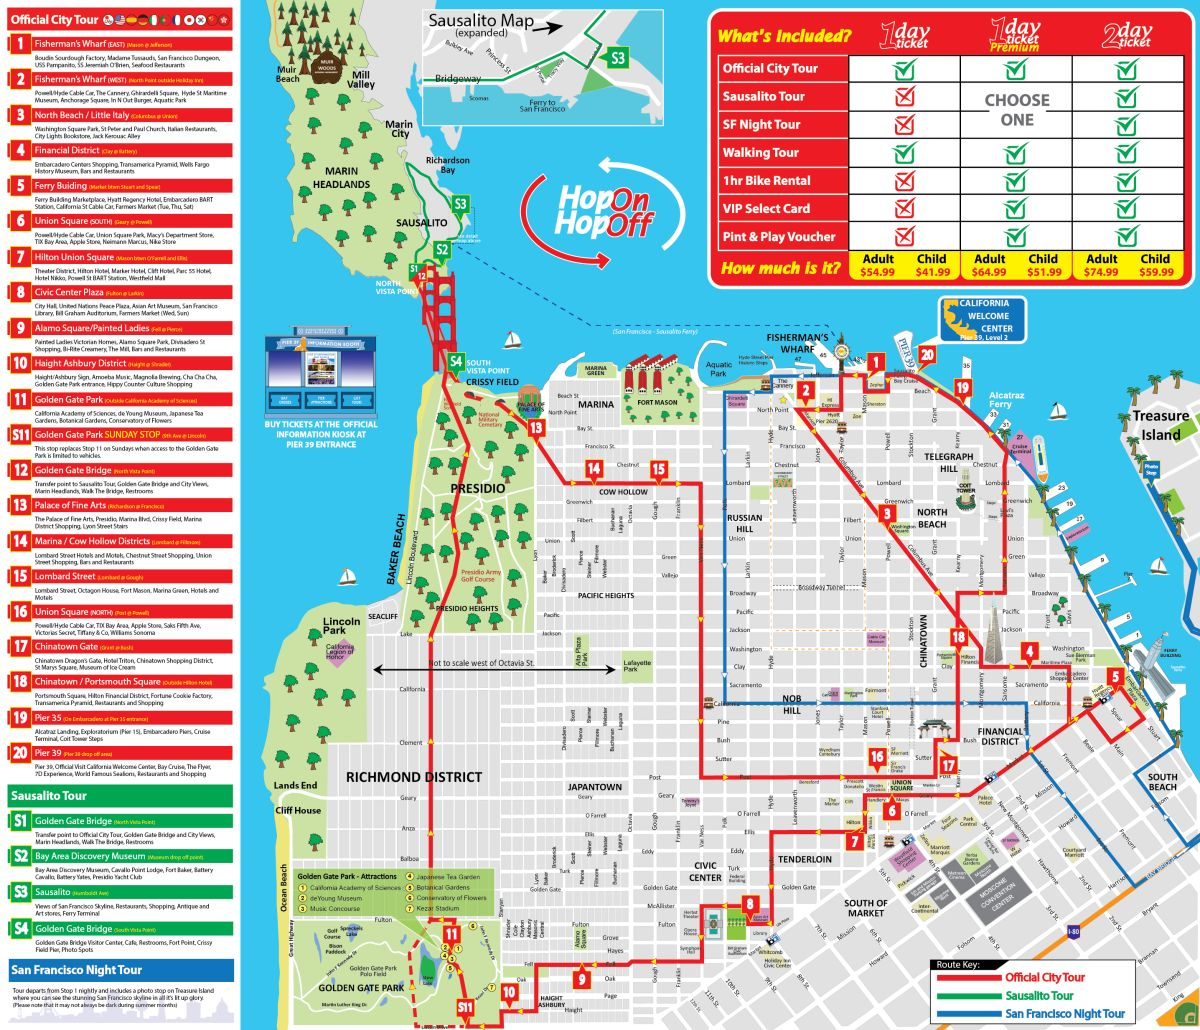 San Francisco Map Tourist.San Francisco Tour Map City Sightseing